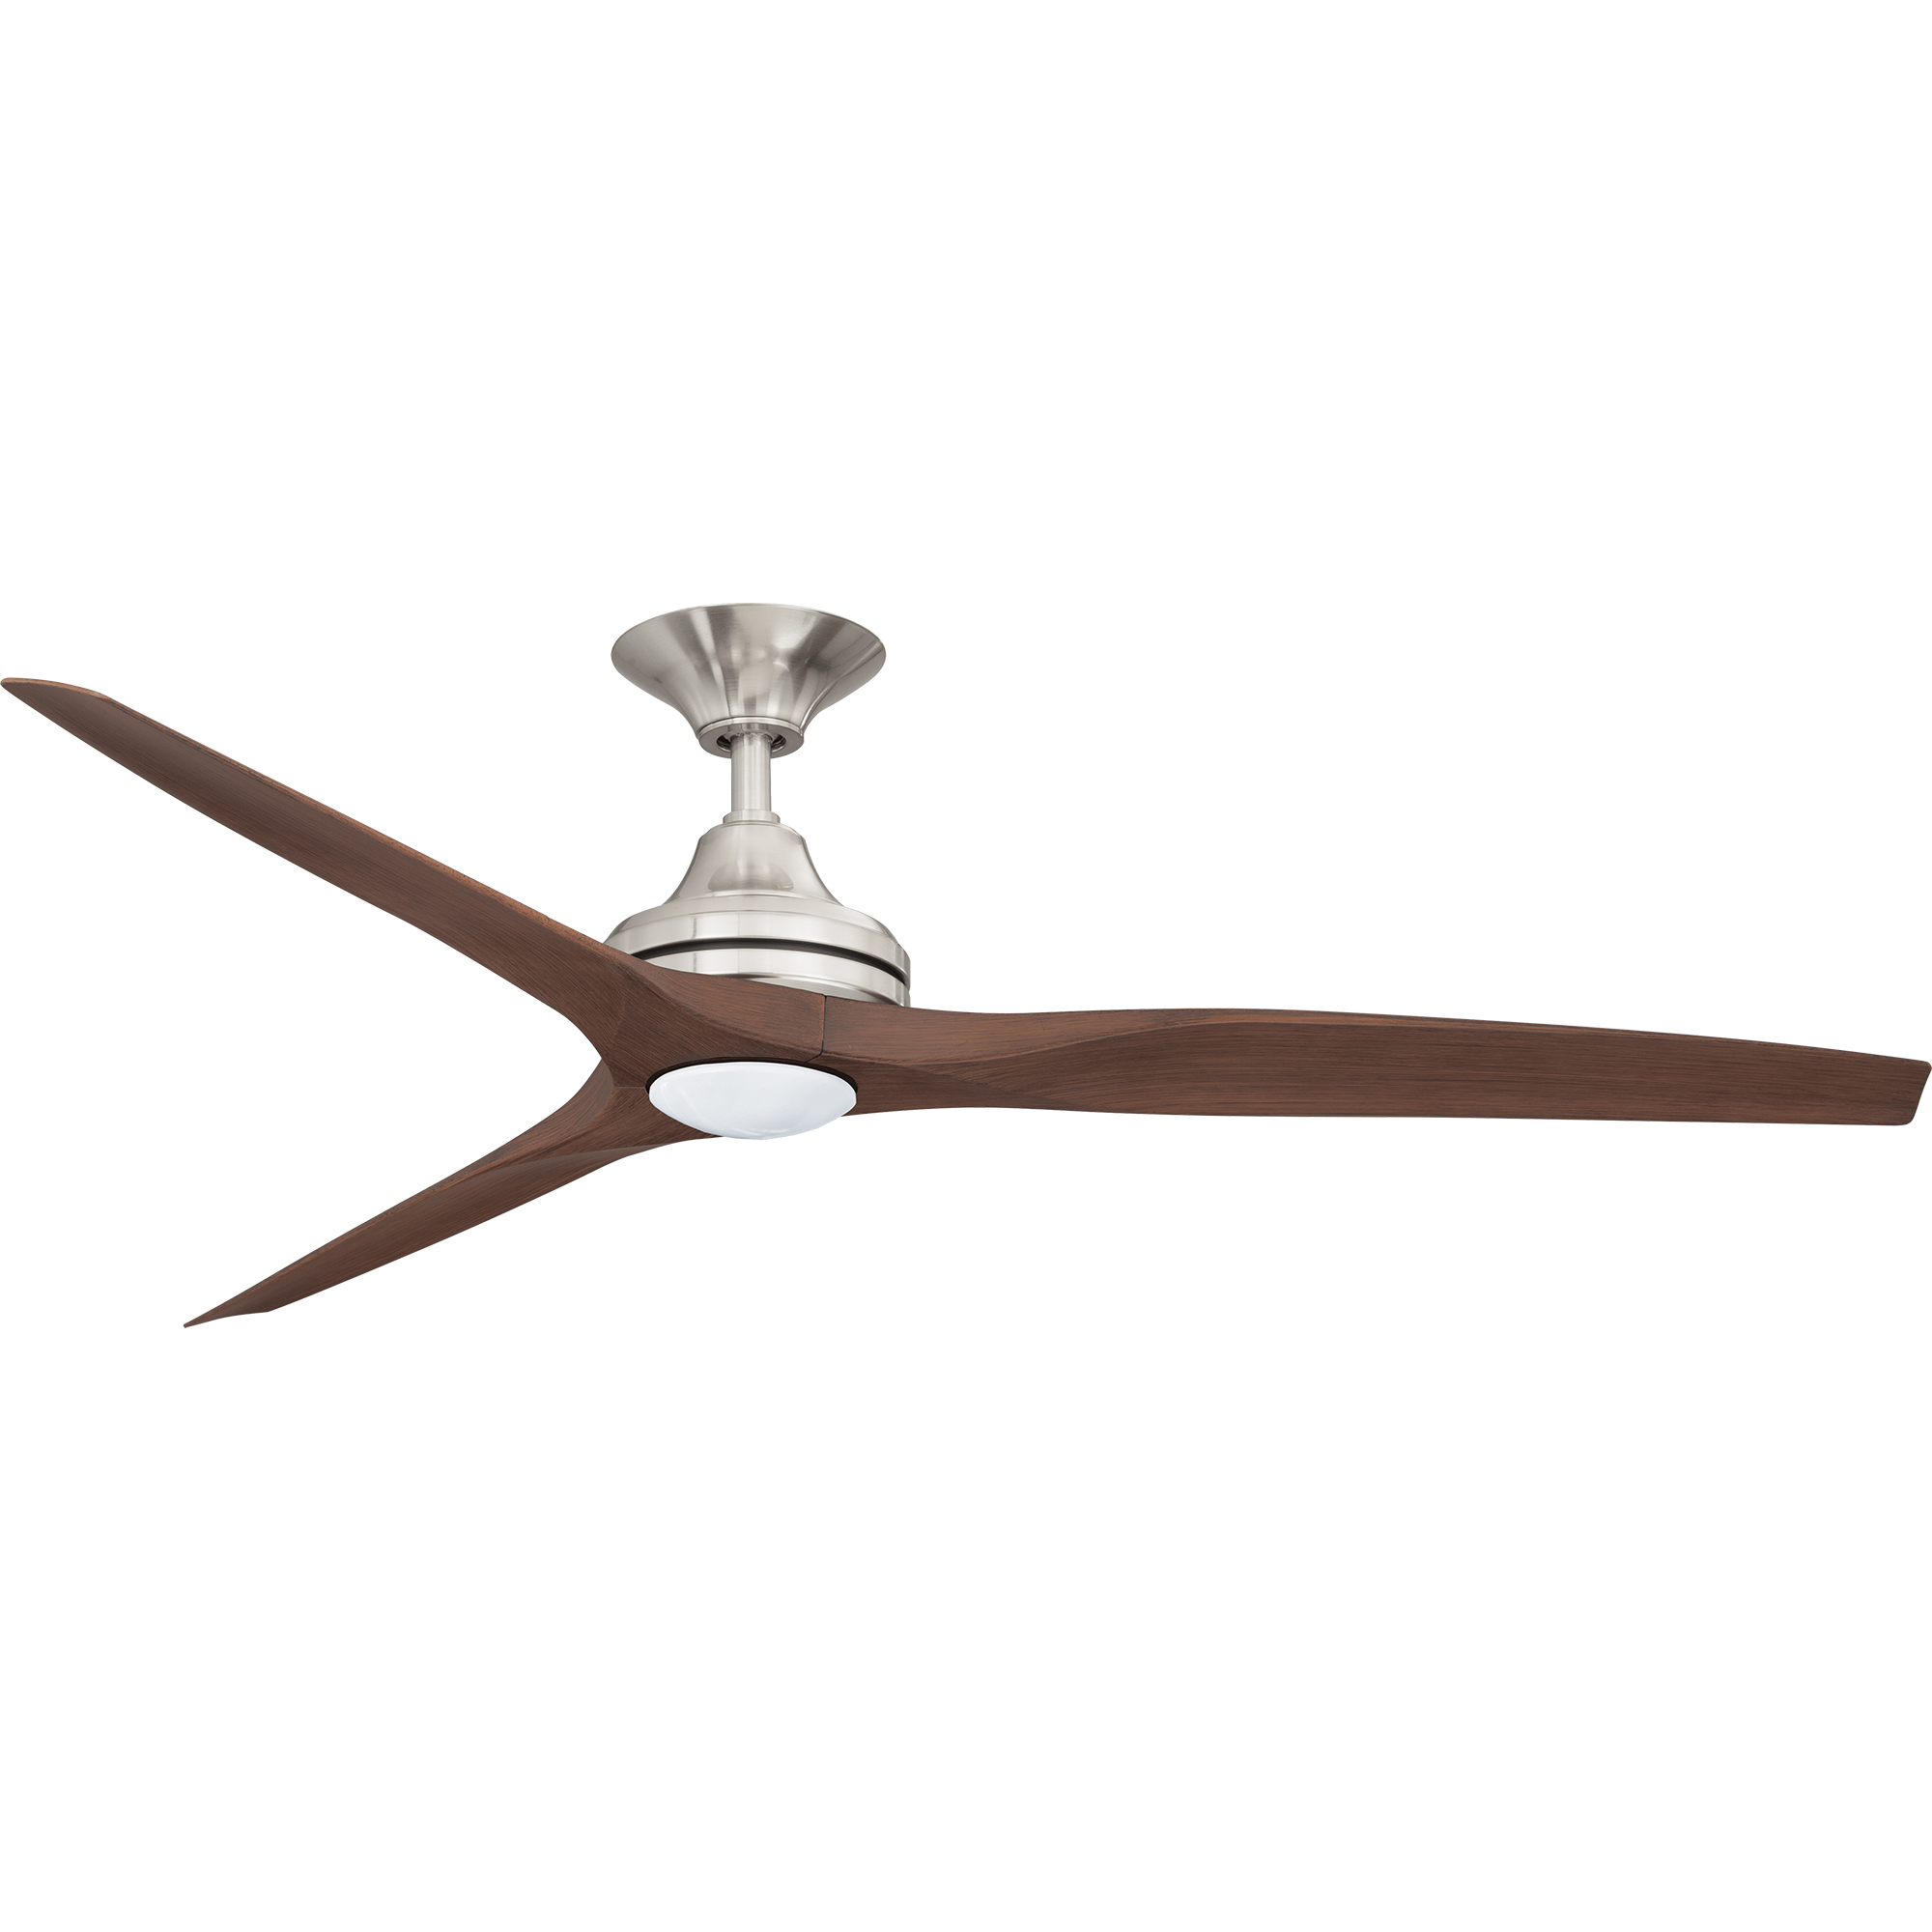 """60"""" Spitfire in Brushed Nickel with Walnut polymer blades and 17W LED light kit"""